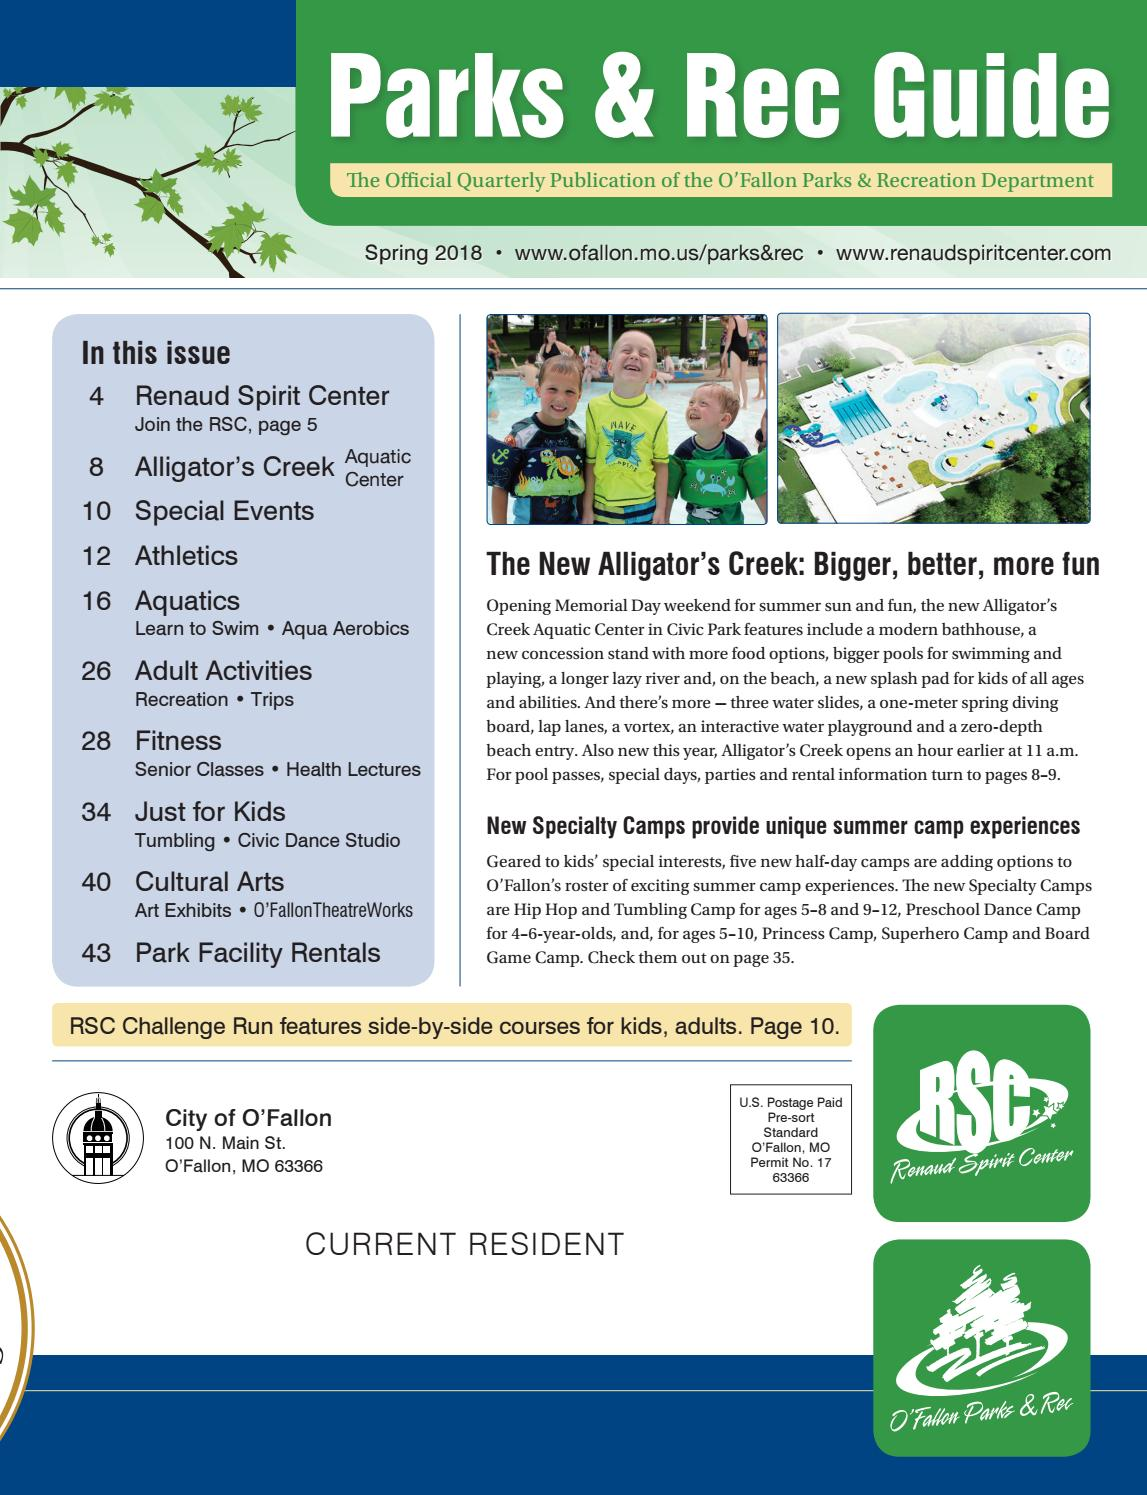 o'fallon parks and rec guide – spring 2018 by city of o'fallon - issuu